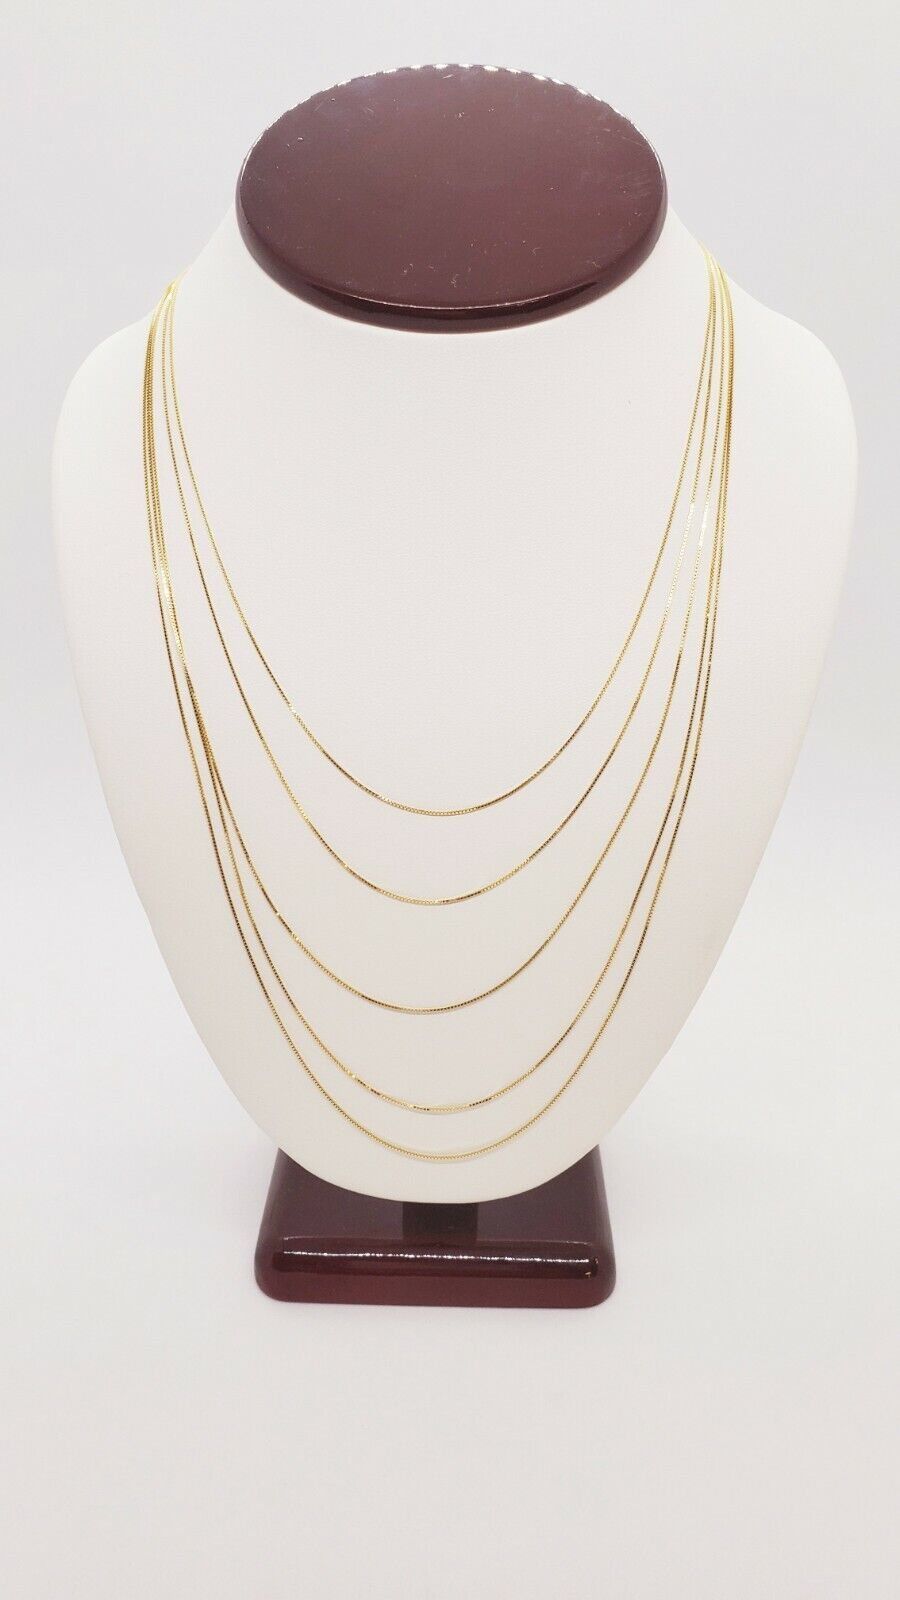 """10K Solid Yellow Gold Italian Box Chain Men's Women's Necklace 16"""" - 24"""" inches 5"""